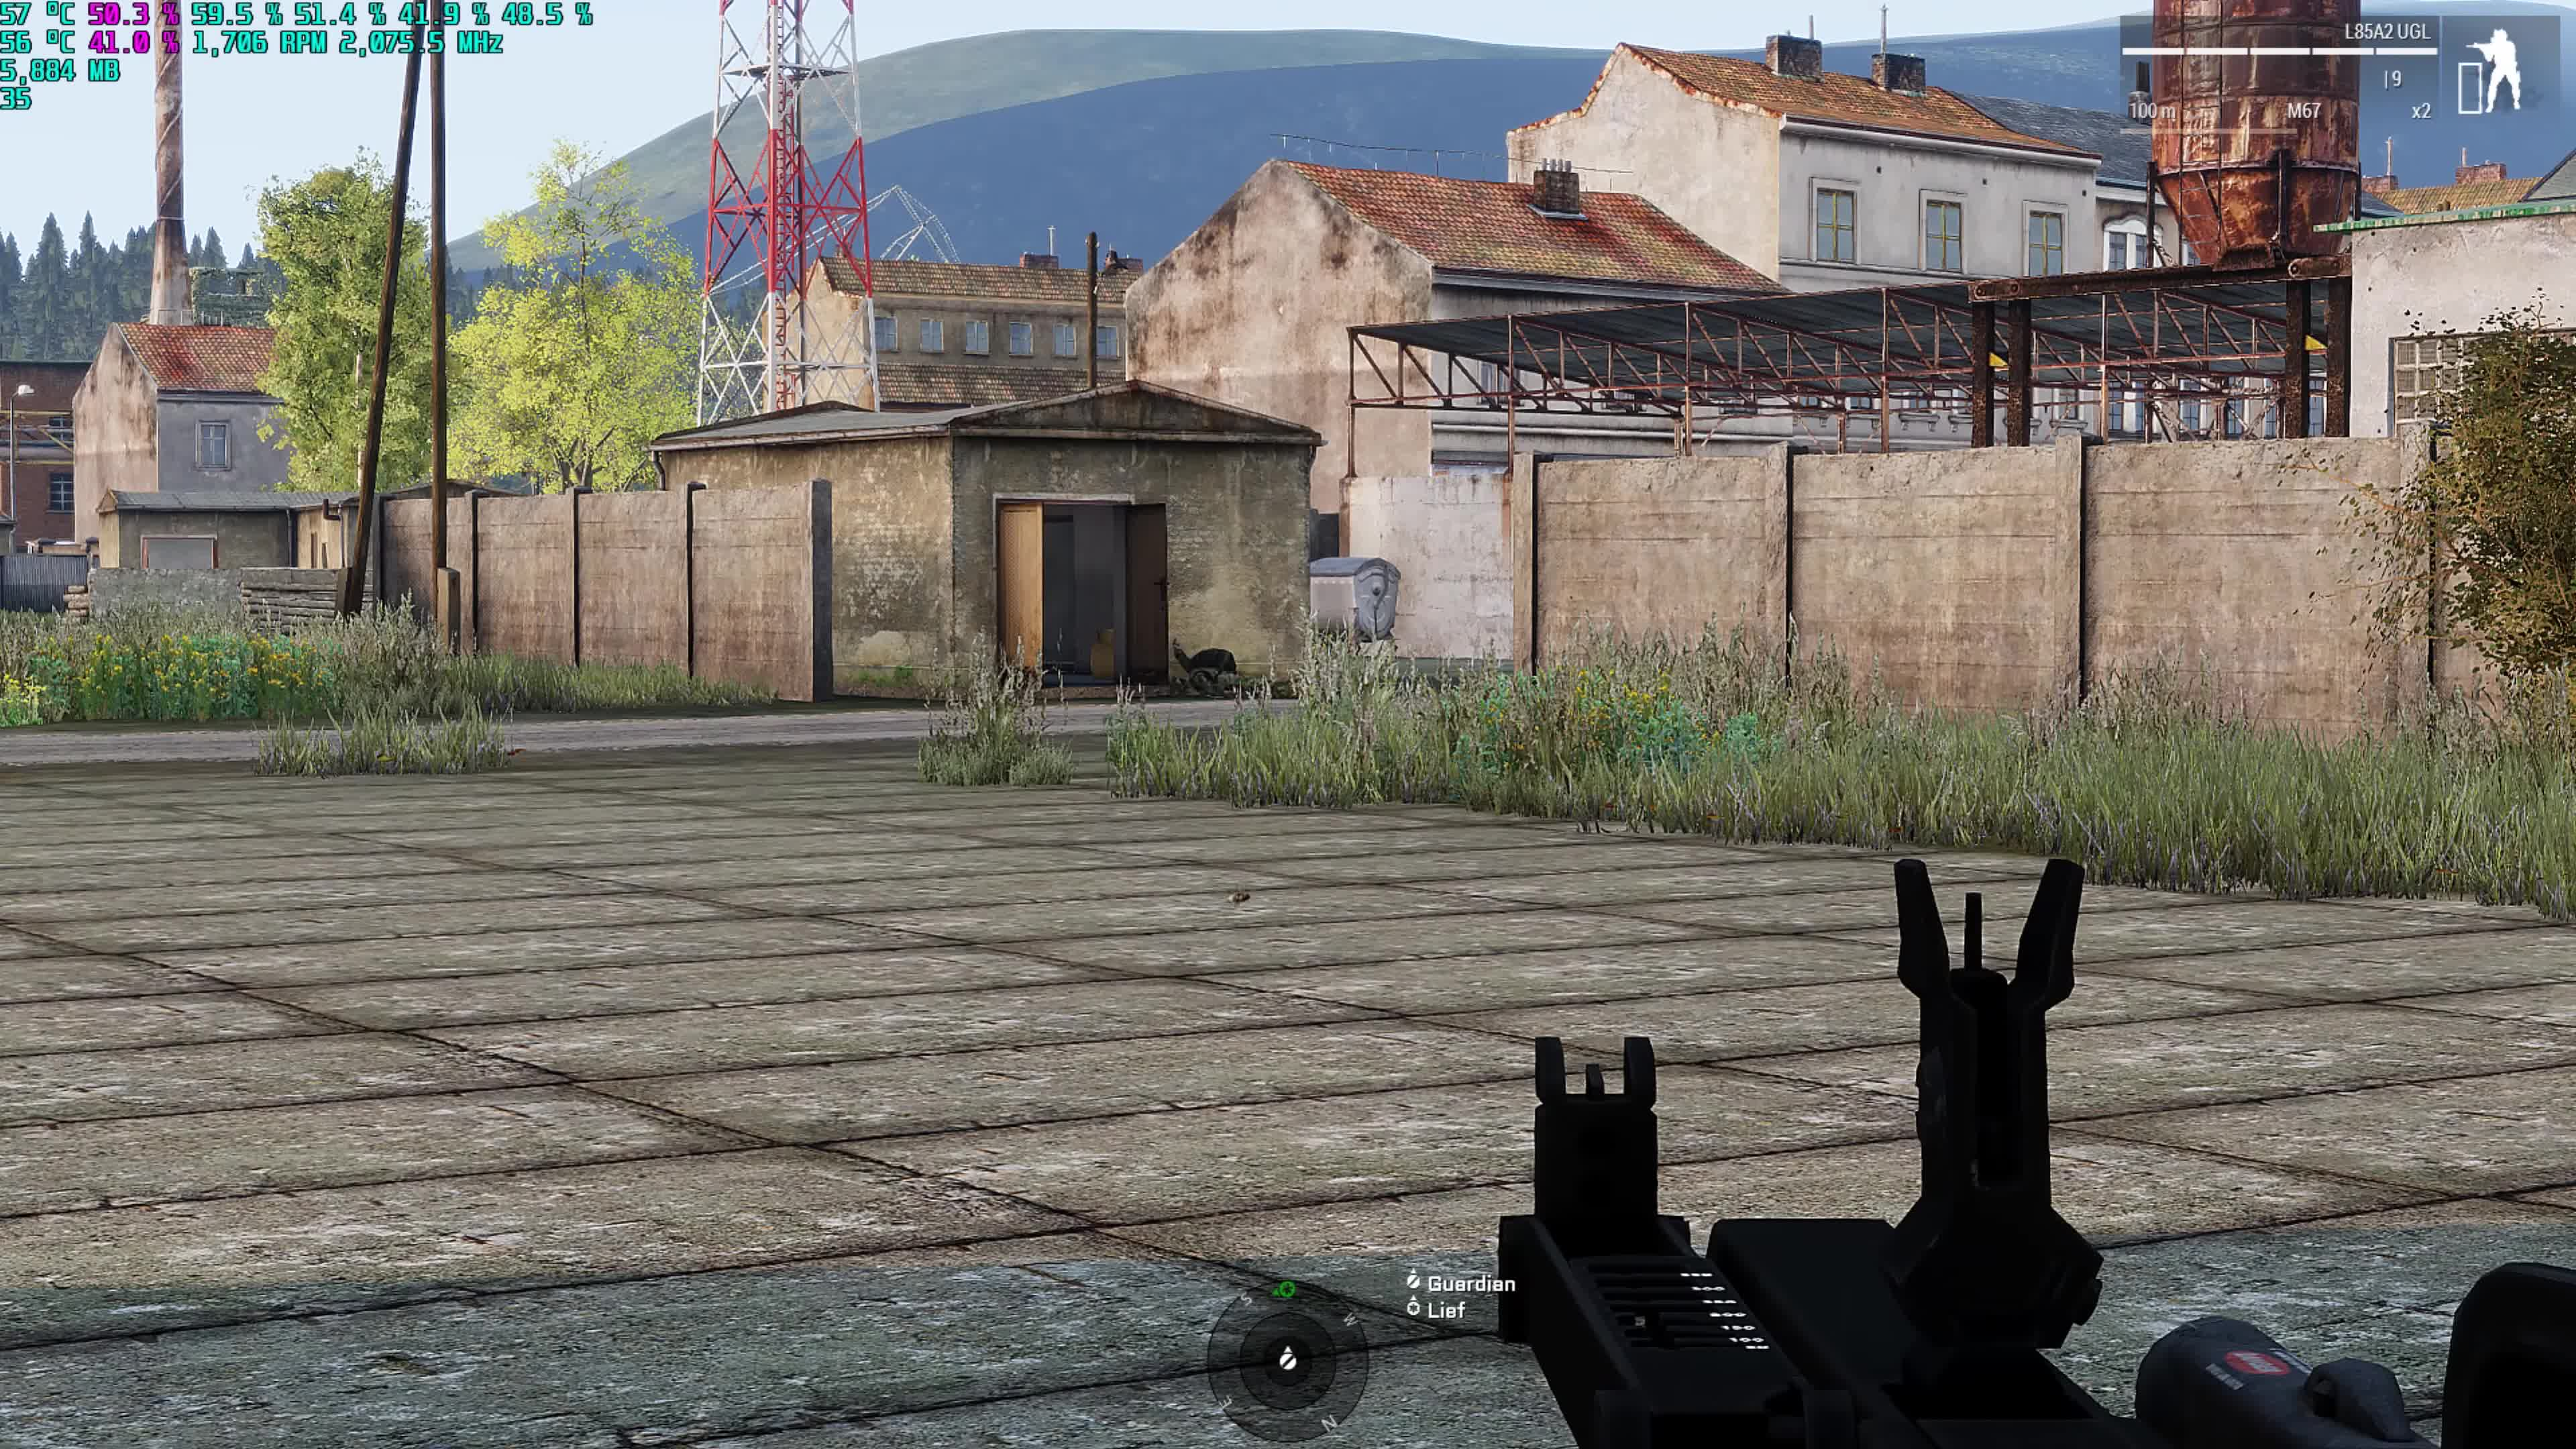 4690k, ARMA, ARMA 3, Bourbon, Three, Warfare, co, co-op, i5, op, Crazd goes up and comes back down  GIFs